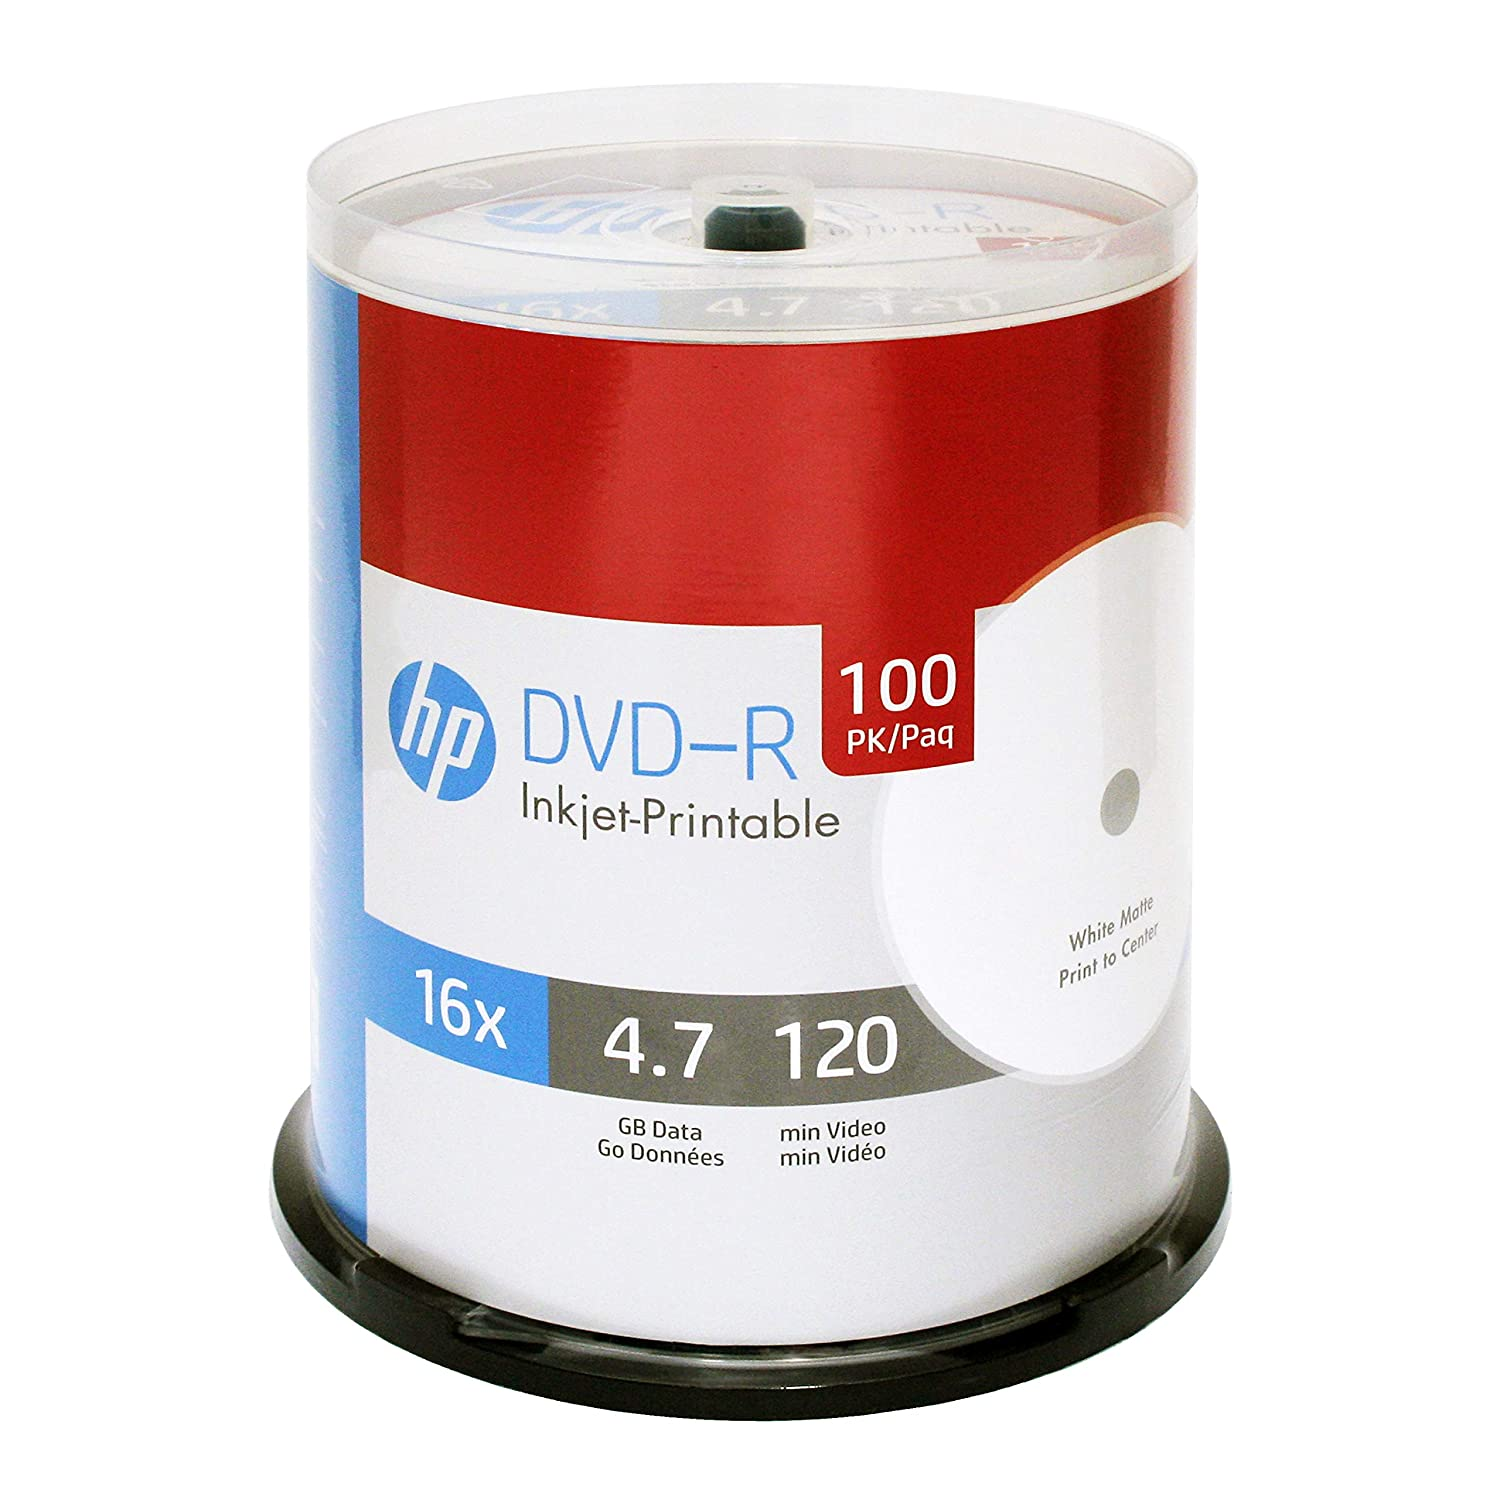 image regarding Ink Jet Printable Dvd called HP DVD-R 4.7GB 16X White Inkjet Printable 100 Pack in just Spindle